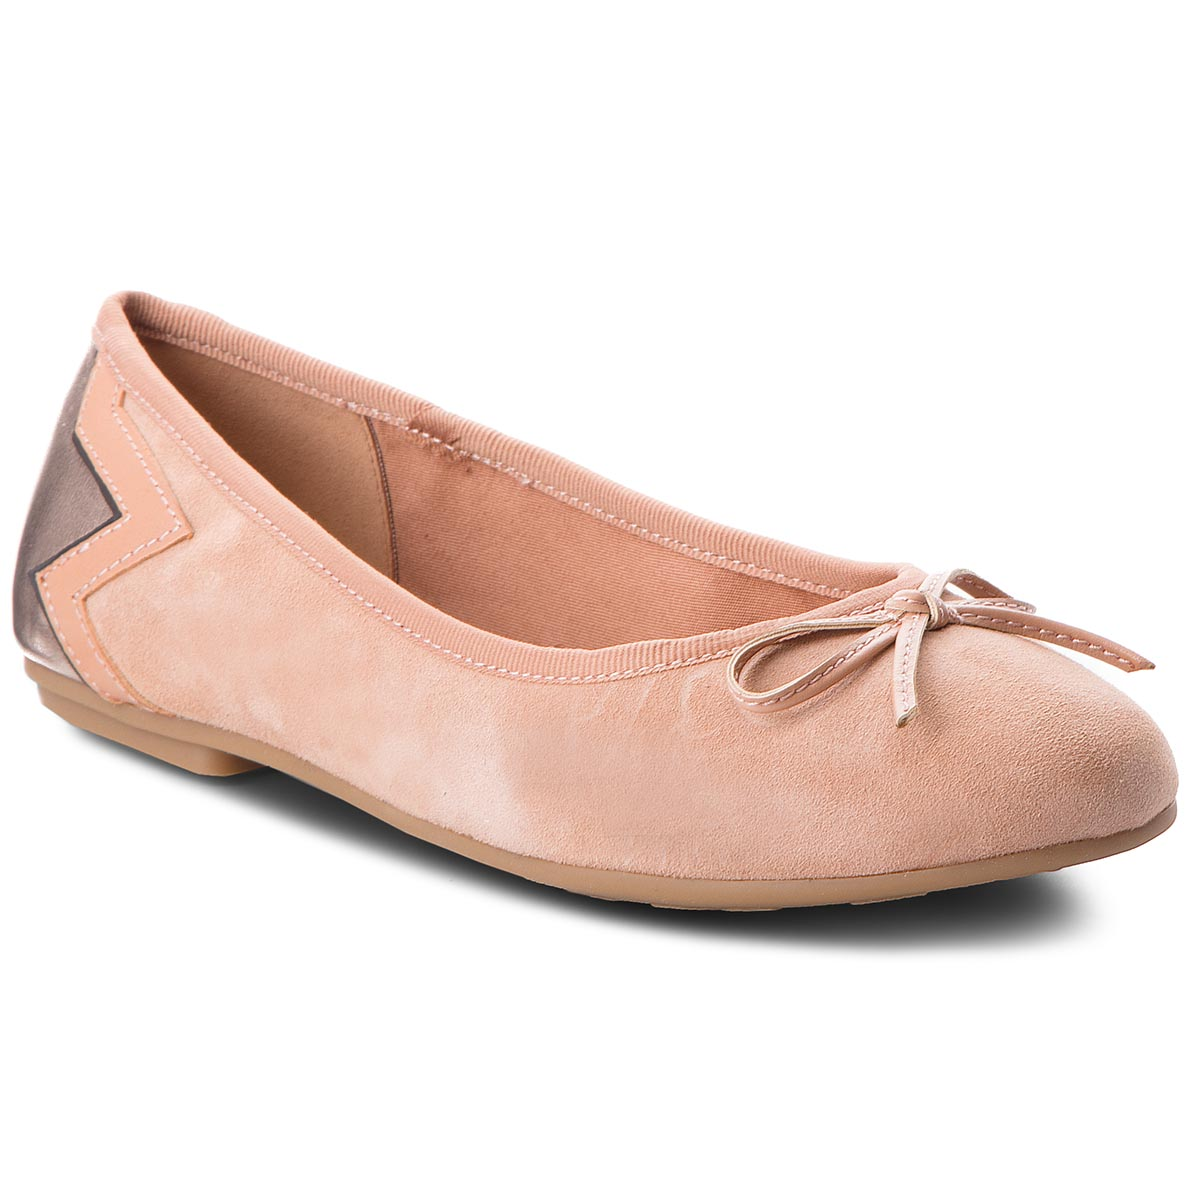 Baleriny TOMMY HILFIGER - Elevated Suede Ballerina FW0FW03036 Silky Nude 297